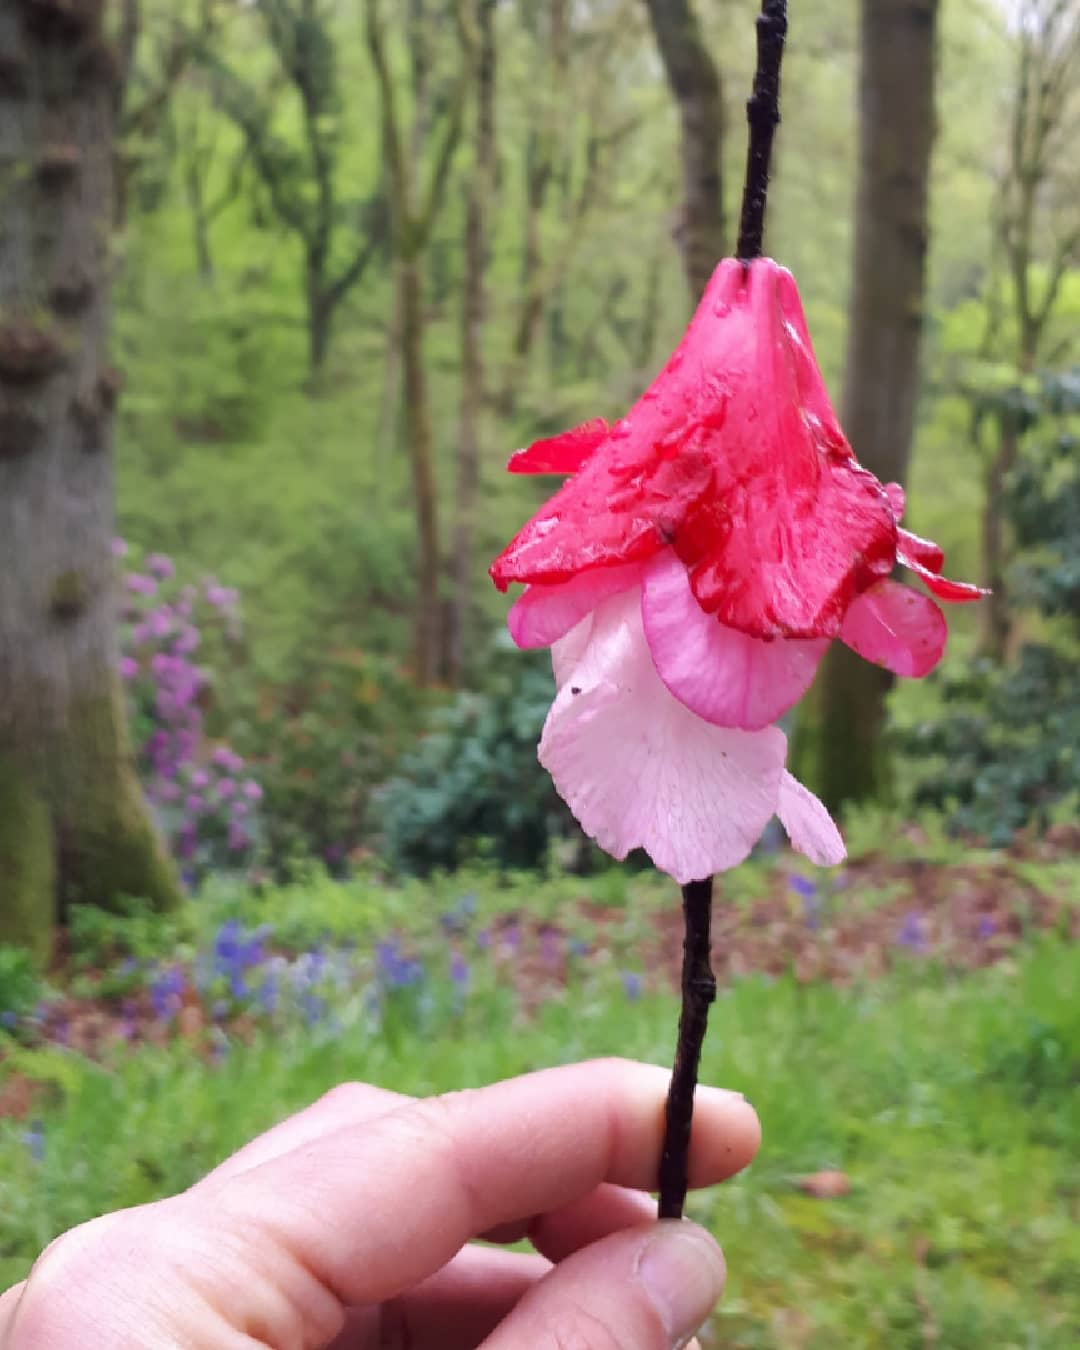 Collecting petals at Hergest Croft by Alice Draws the line